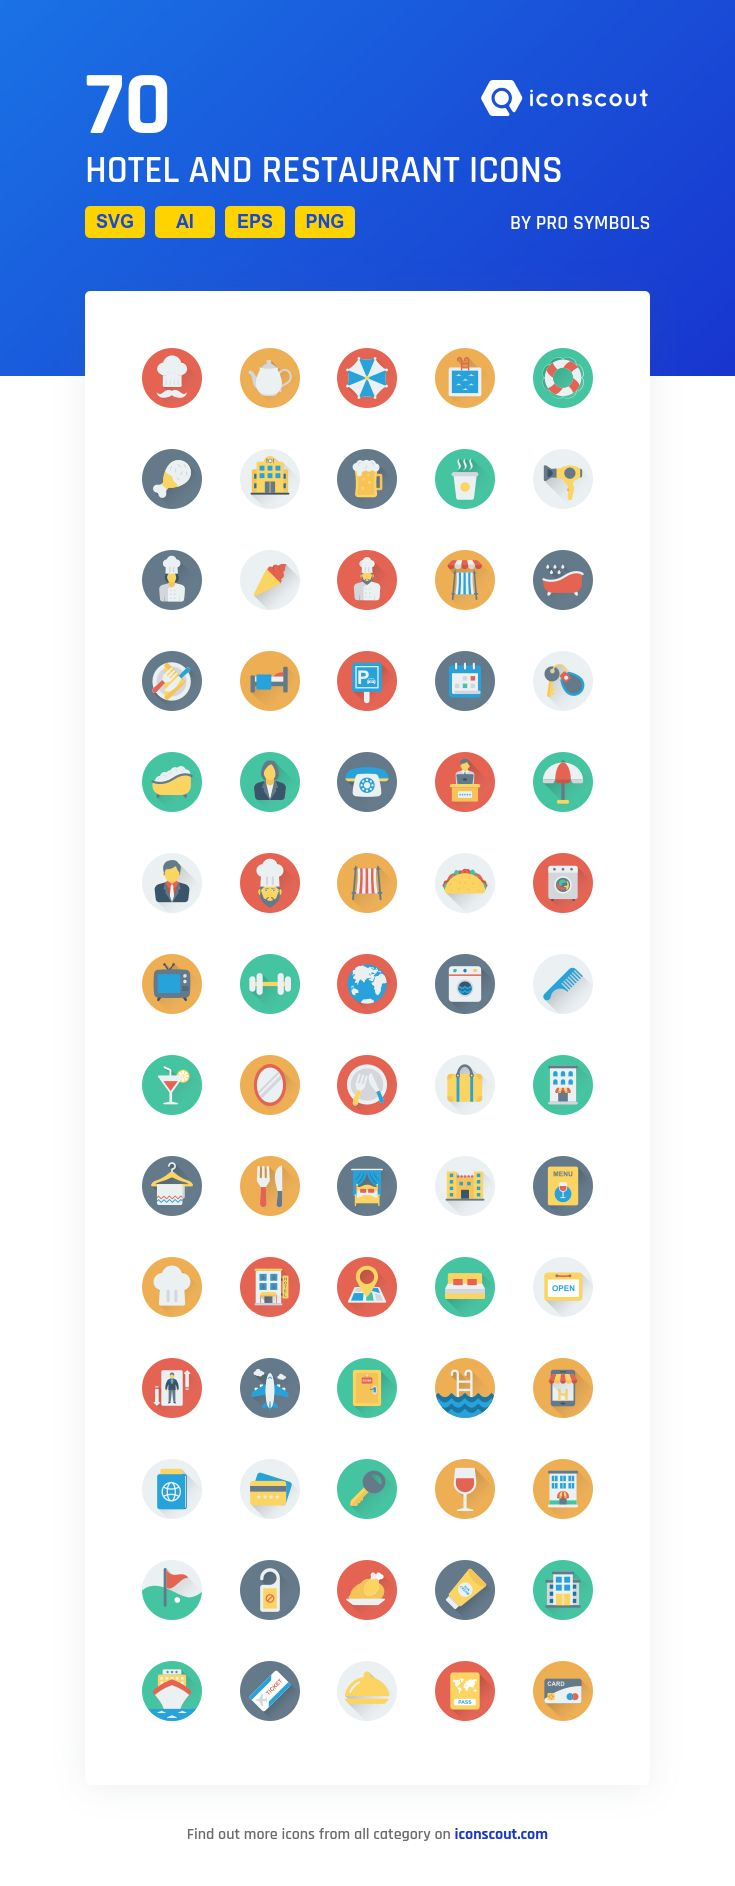 Hotel And Restaurant  Icon Pack - 70 Flat Icons